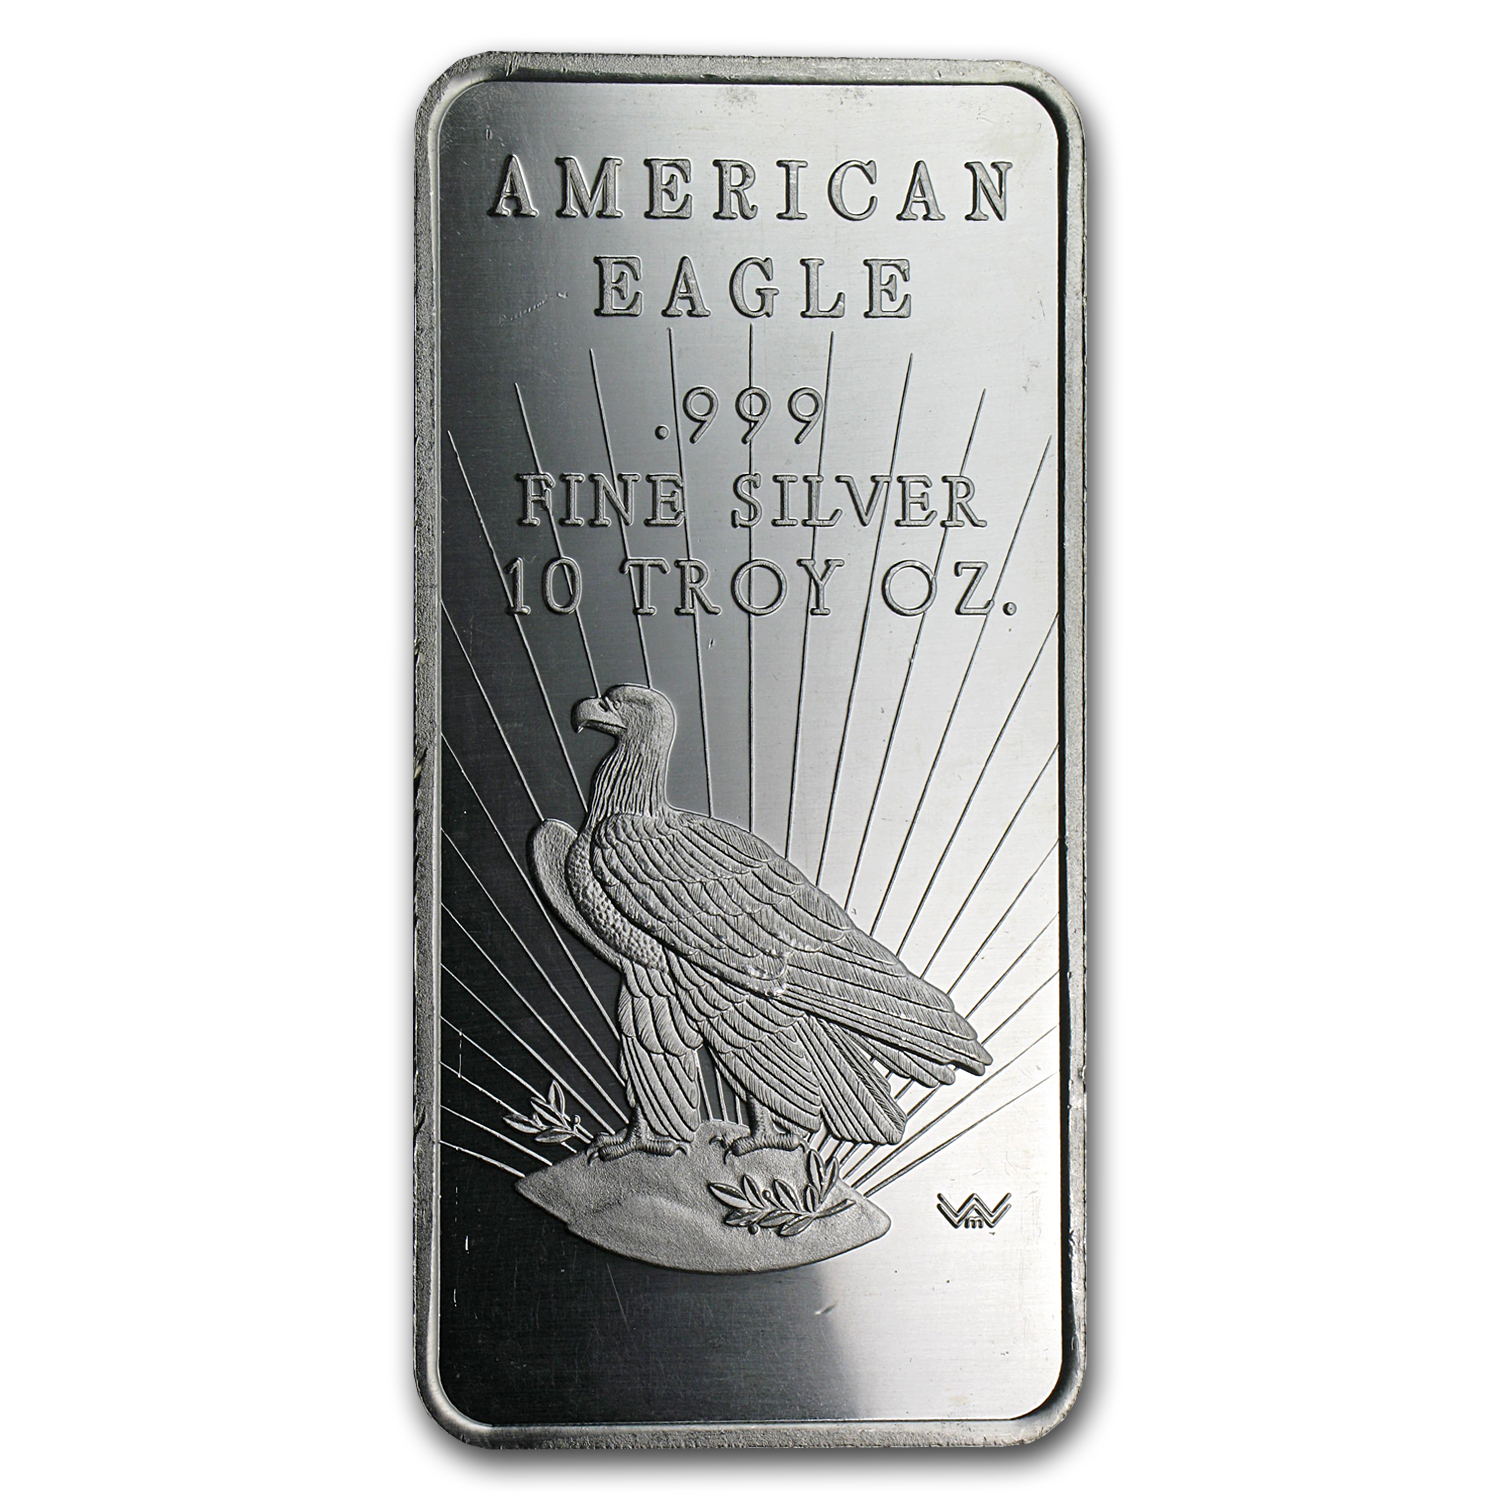 10 oz Silver Bars - American Eagle Silver Bar